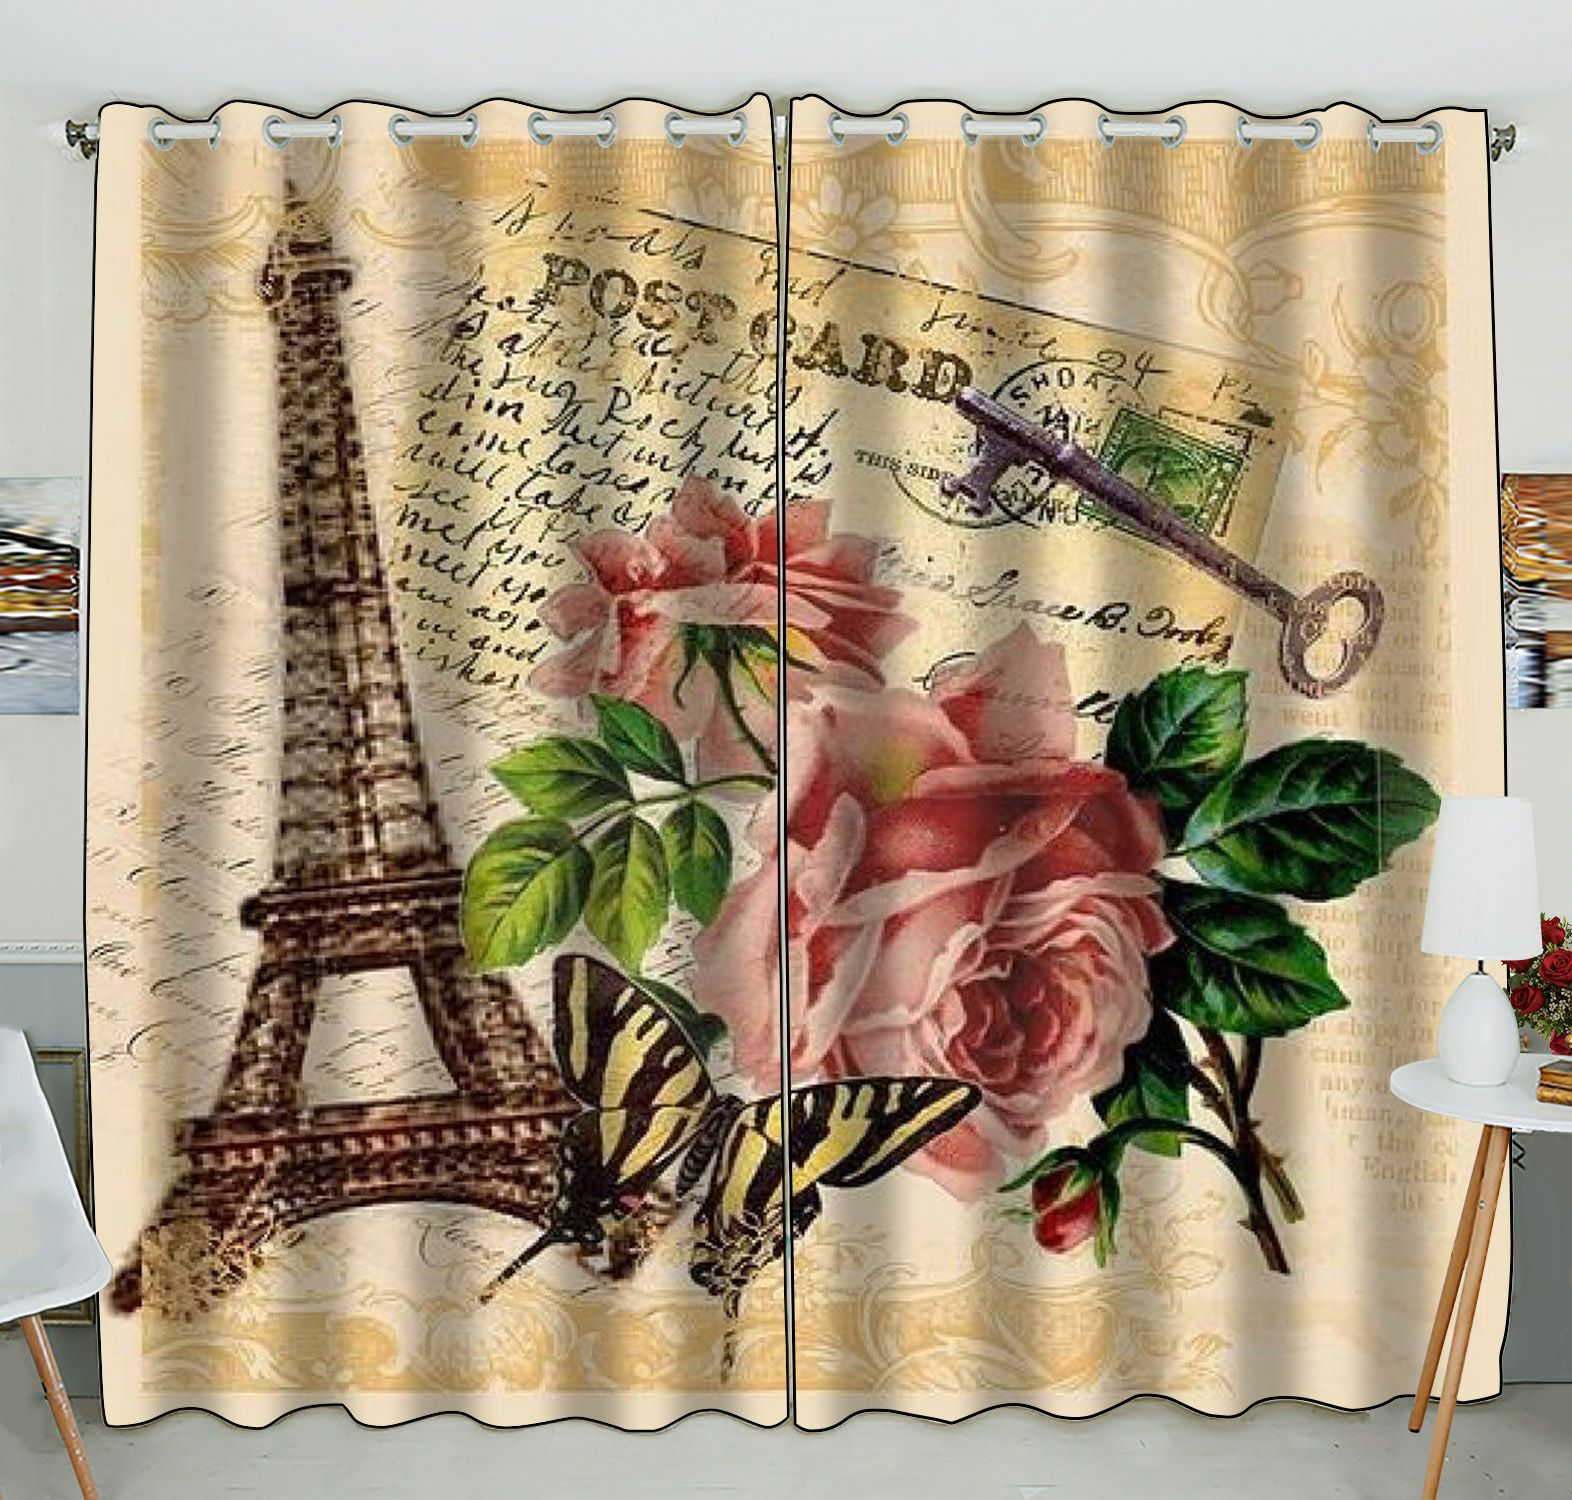 ZKGK Paris Eiffel Tower Window Curtain Drapery/Panels/Treatment For Living Room Bedroom Kids Rooms 52x84 inches Two Panel